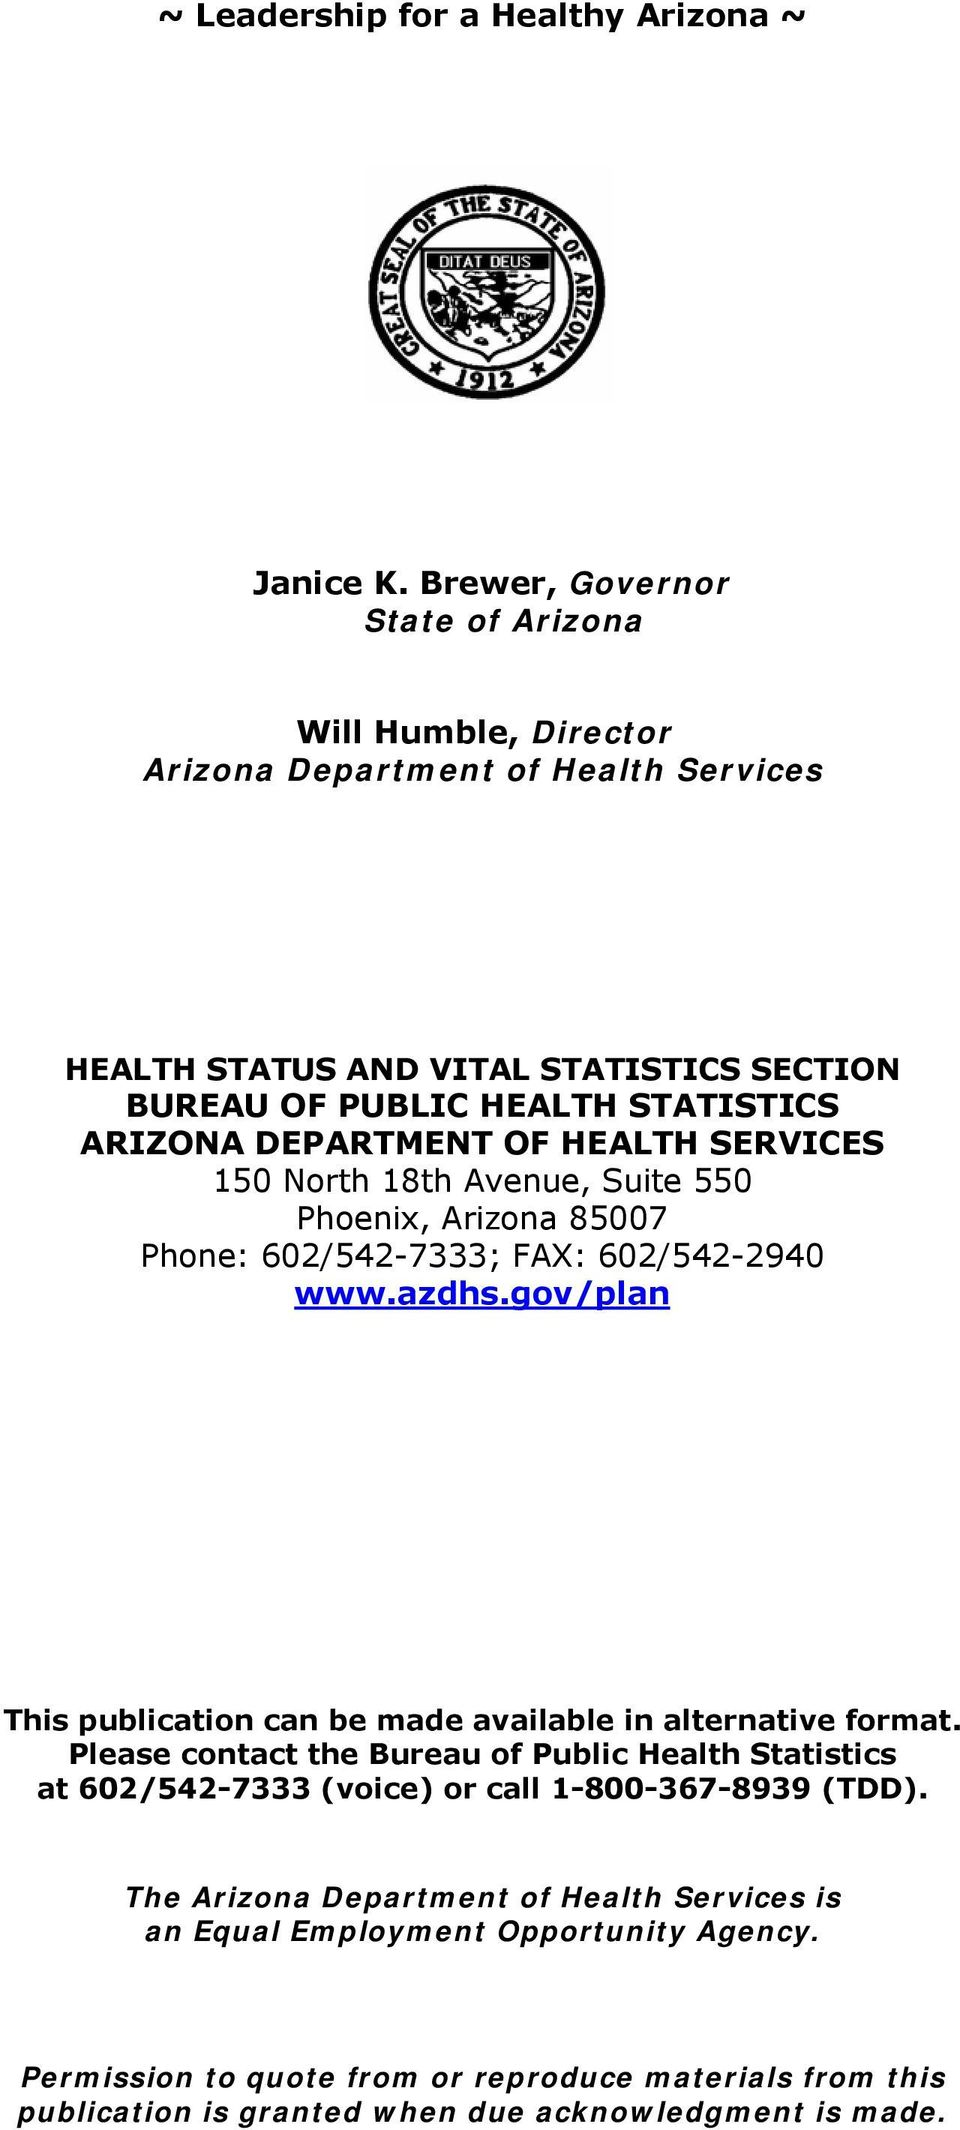 DEPARTMENT OF HEALTH SERVICES 150 North 18th Avenue, Suite 550 Phoenix, Arizona 85007 Phone: 602/542-7333; FAX: 602/542-2940 www.azdhs.